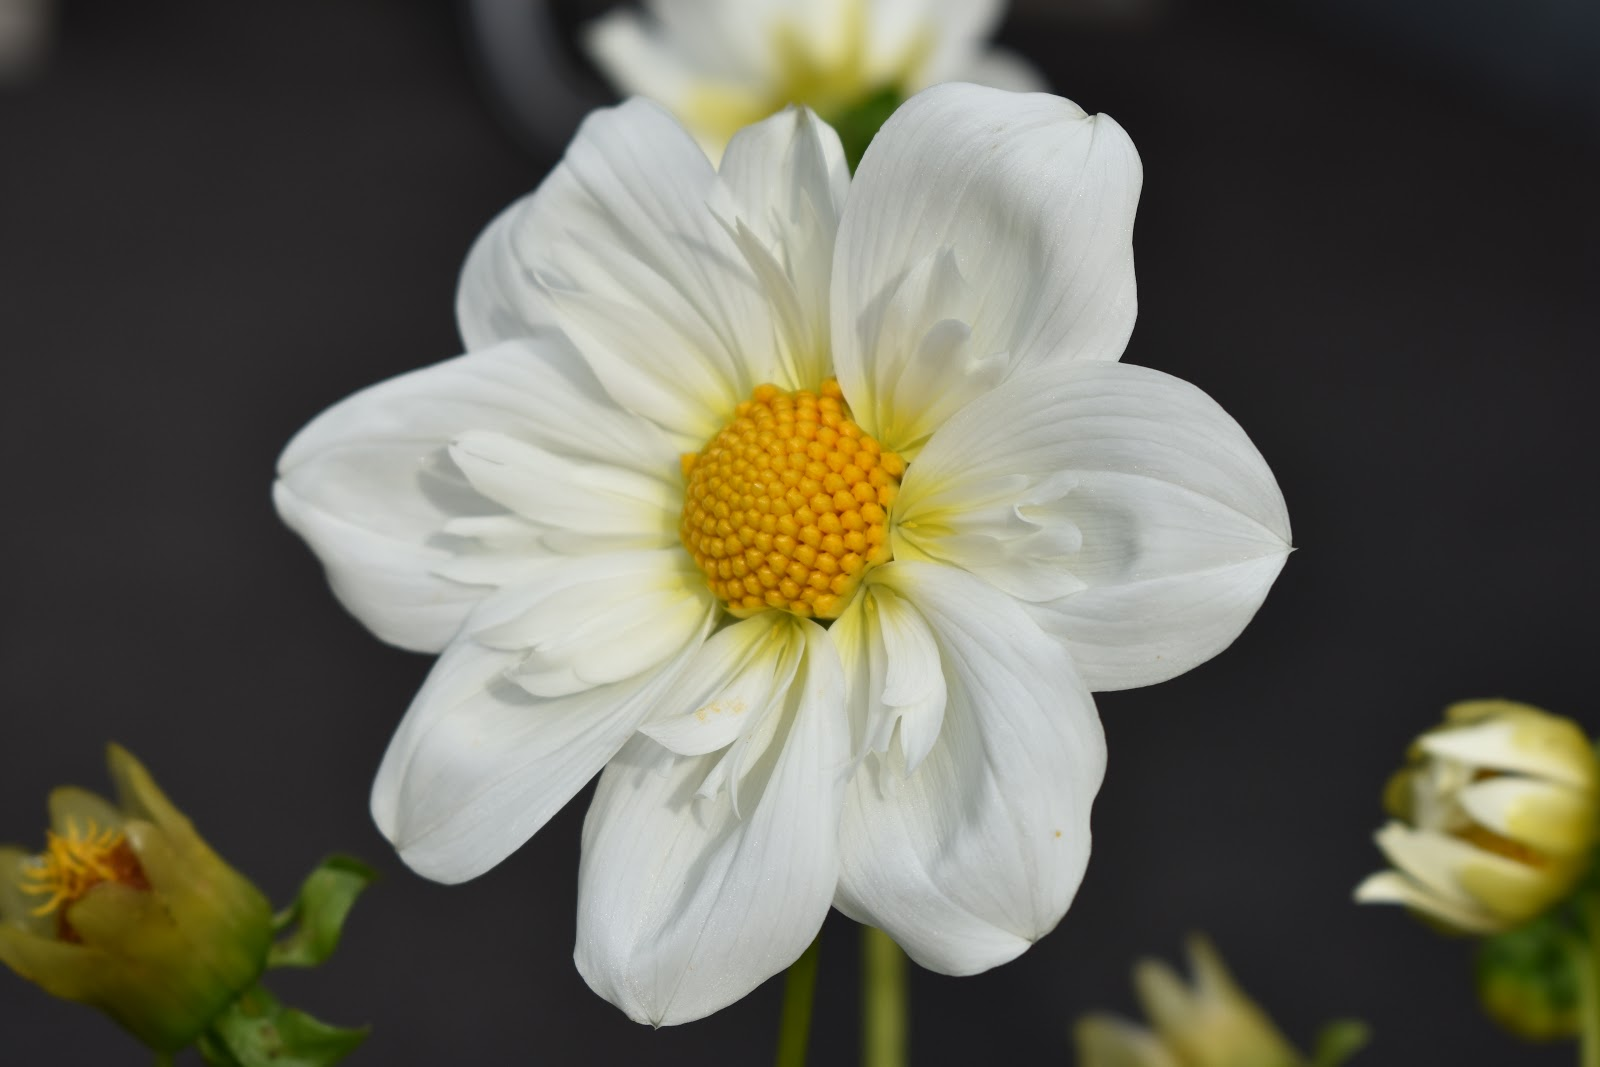 Dahlia 'Twyning's White Chocolate'